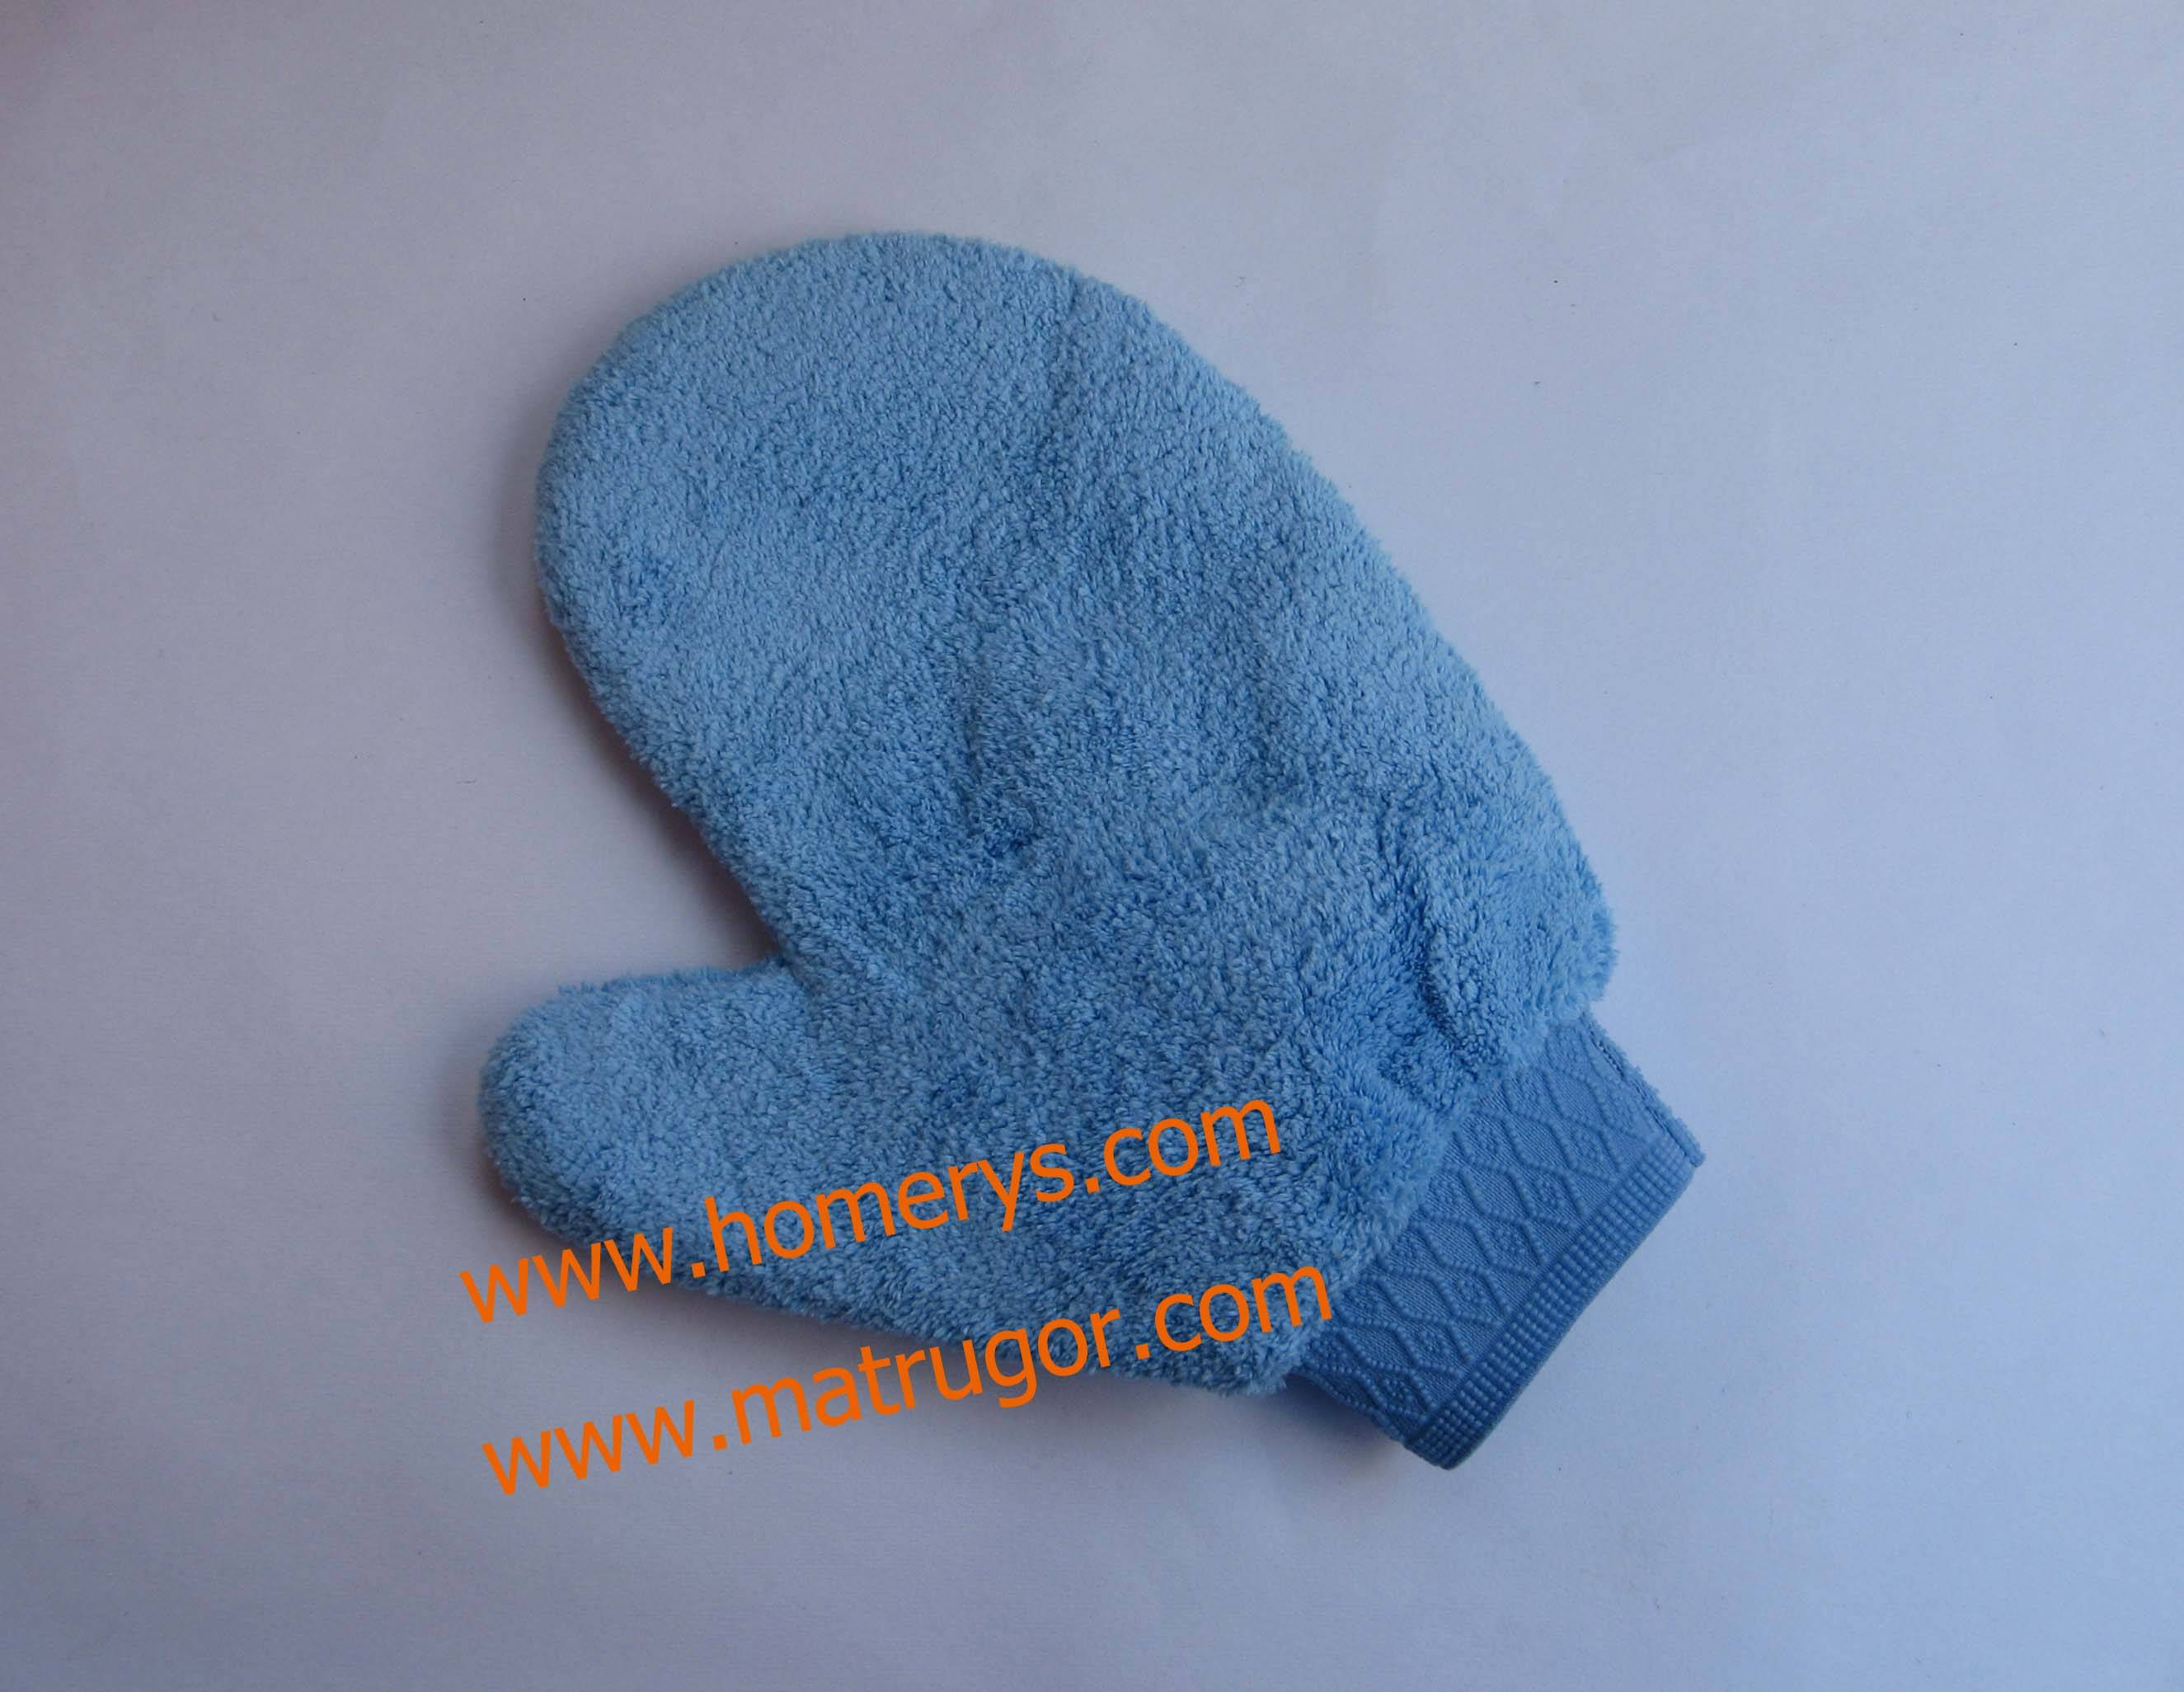 Microfiber Coral Mitt for Car Care